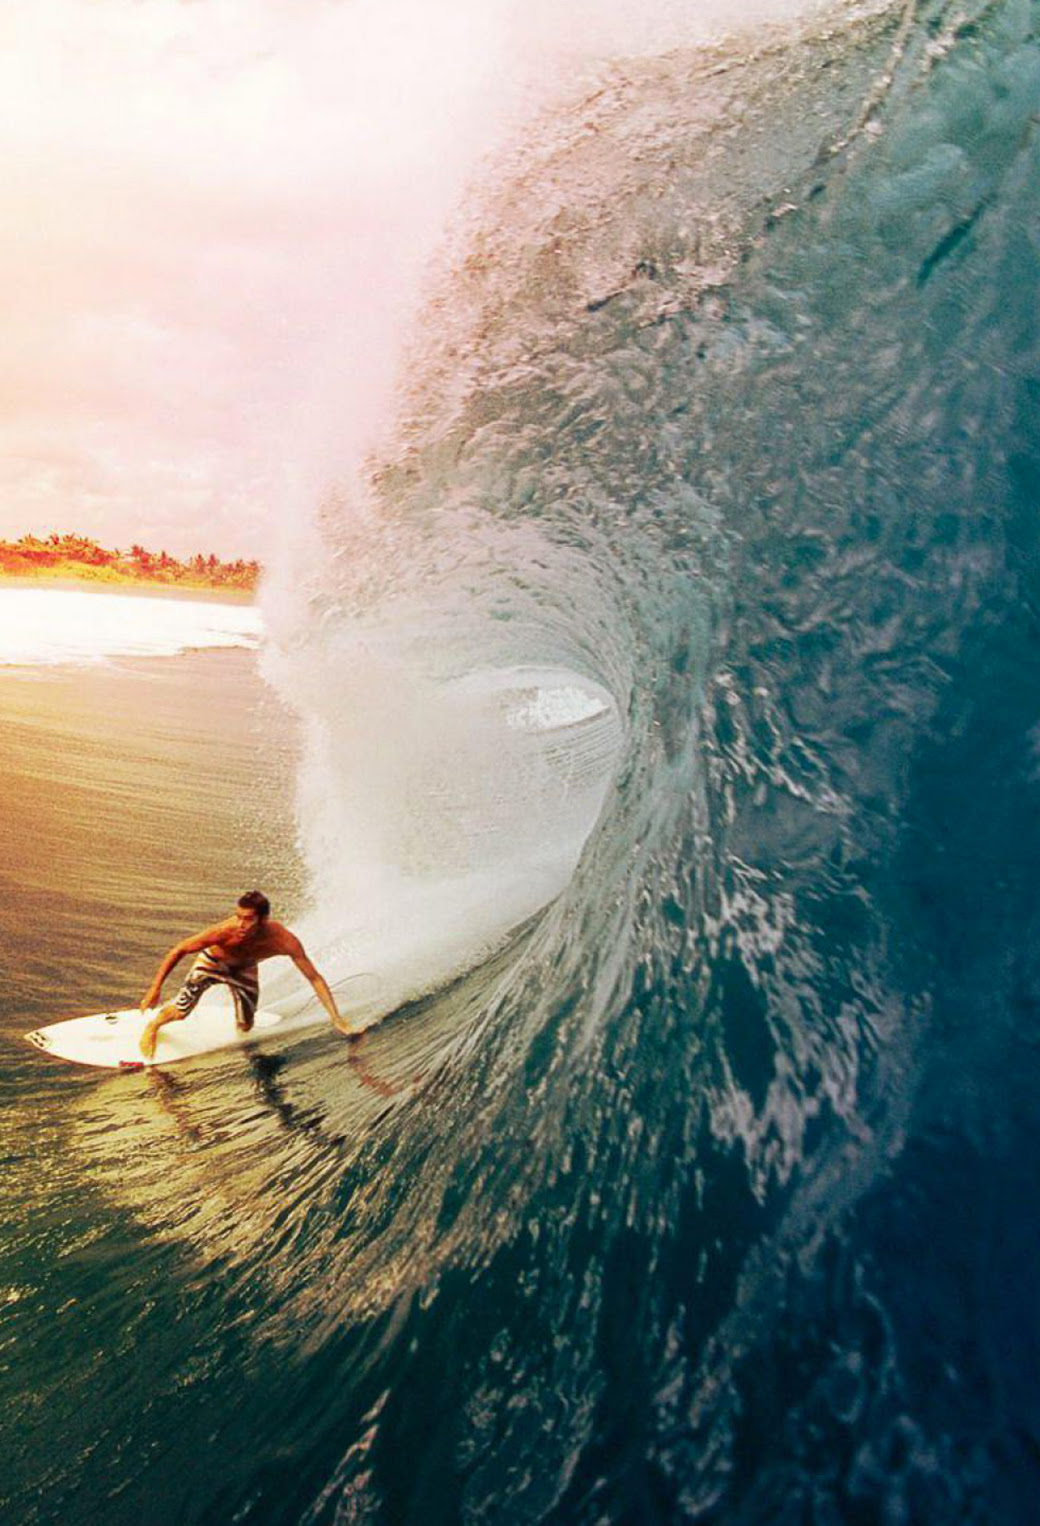 Surfer - iPhone Parallax Wallpaper for iPhone X, 8, 7, 6 ...